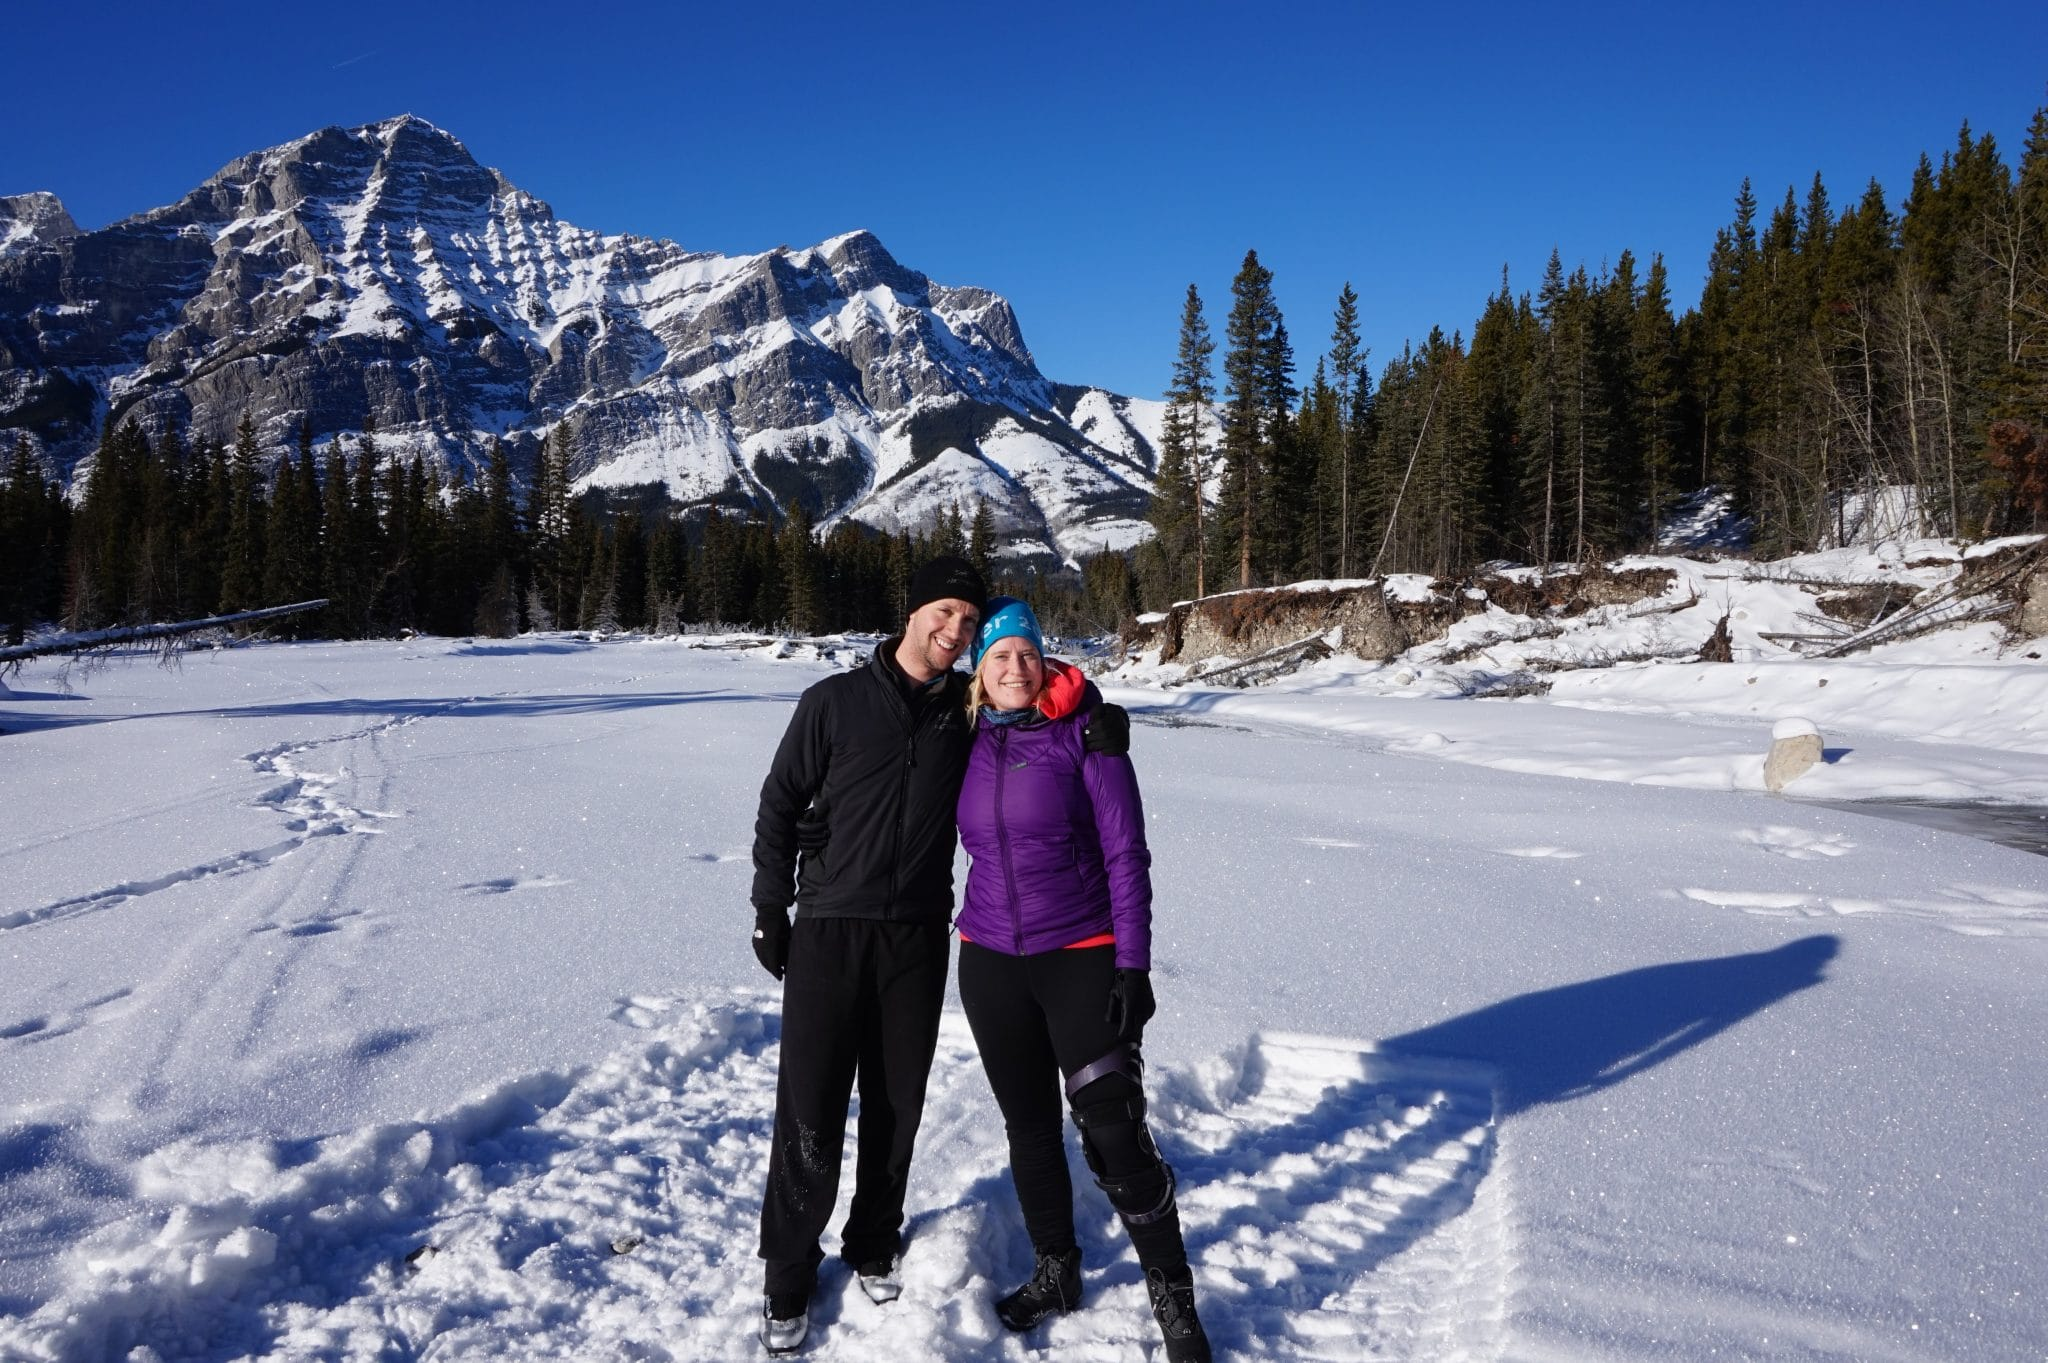 The end of Wedge Connector in Kananaskis Country